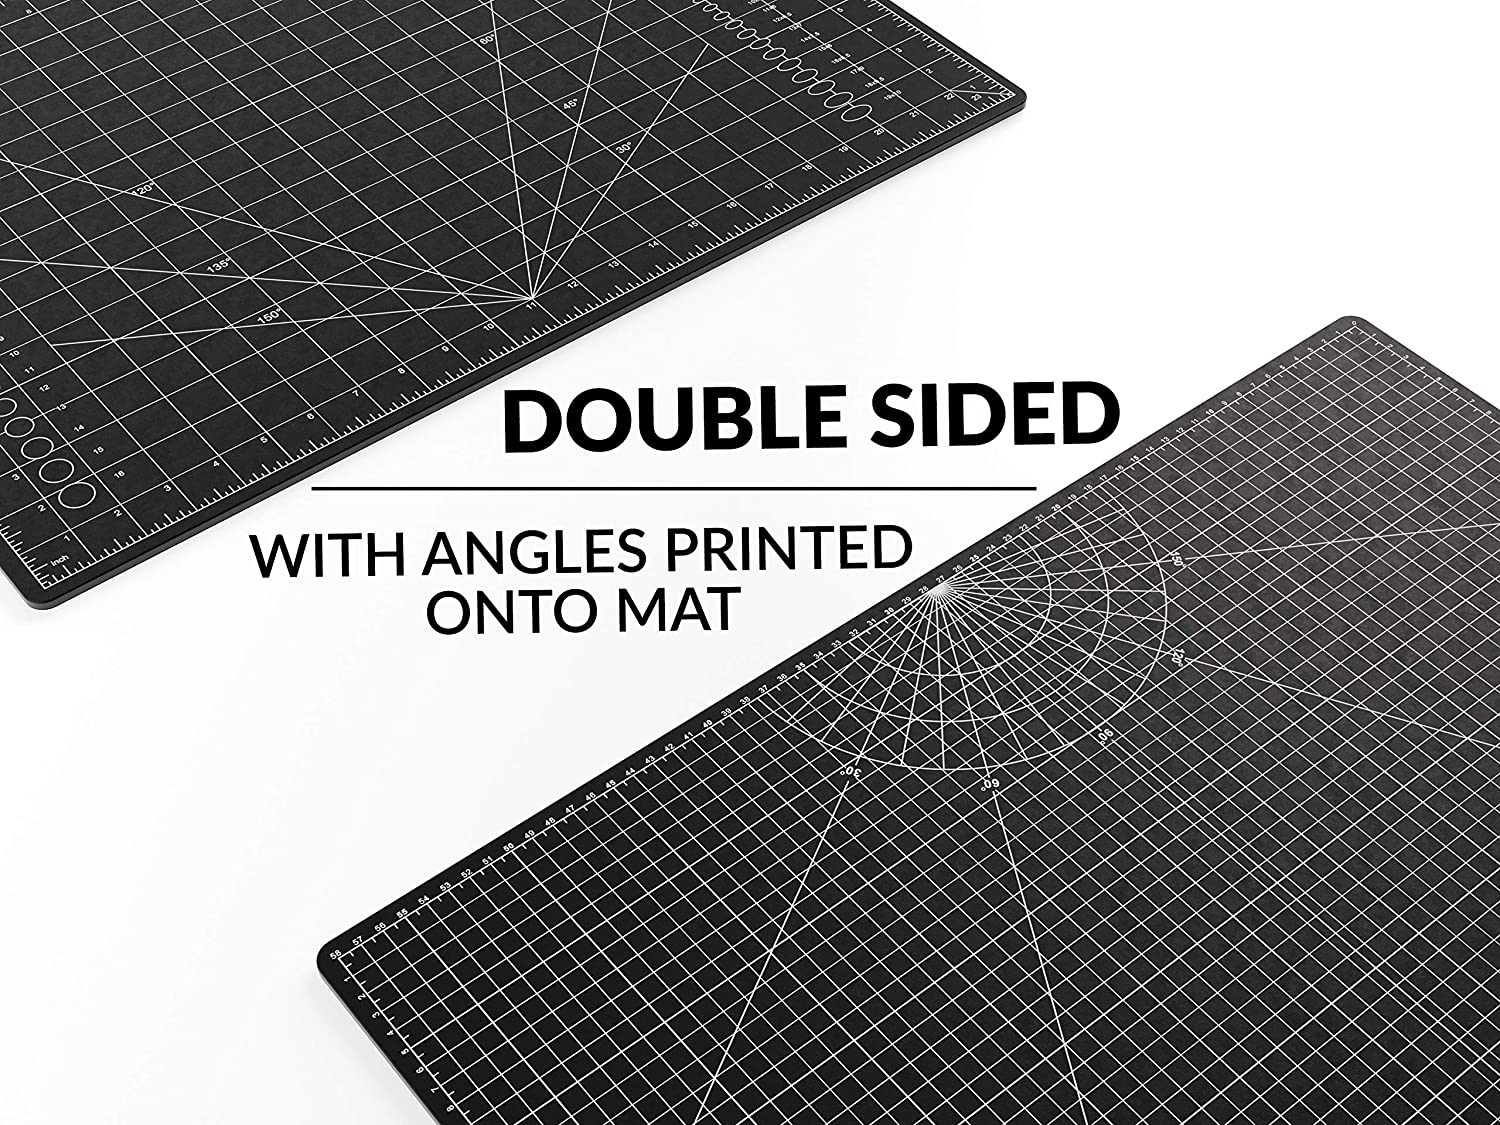 3 Layer Quality PVC Construction A2 Imperial and Metric Grid Lines 18 Inches by 24 inches and Crafts Sewing XNM Creations Premium Self Healing Cutting Mat Perfect for Cutting Dual Sided